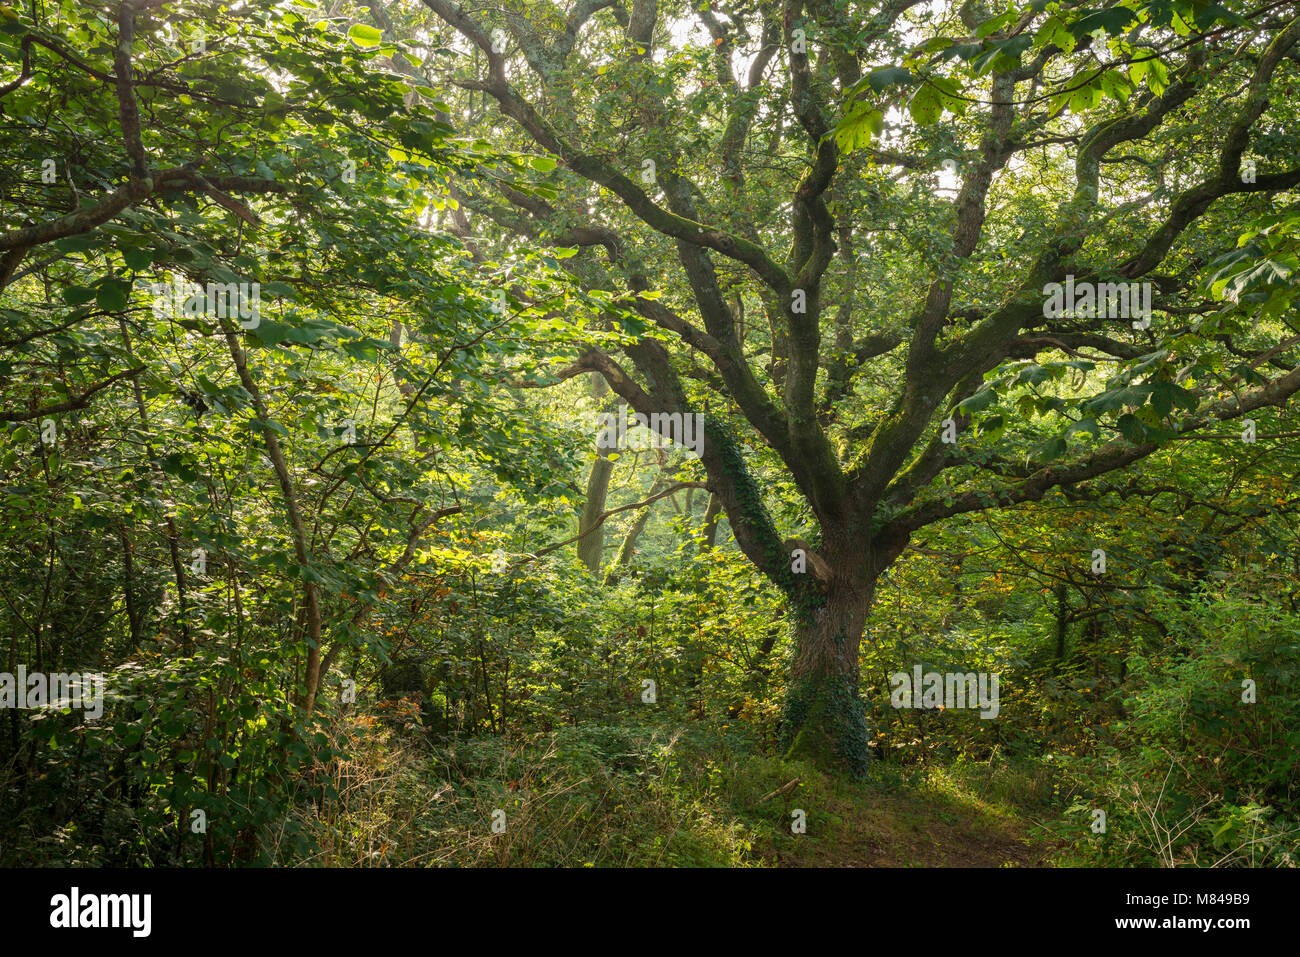 Mature oak tree in verdant deciduous woodland, St Issey, Cornwall, England. Summer (August) 2017. - Stock Image